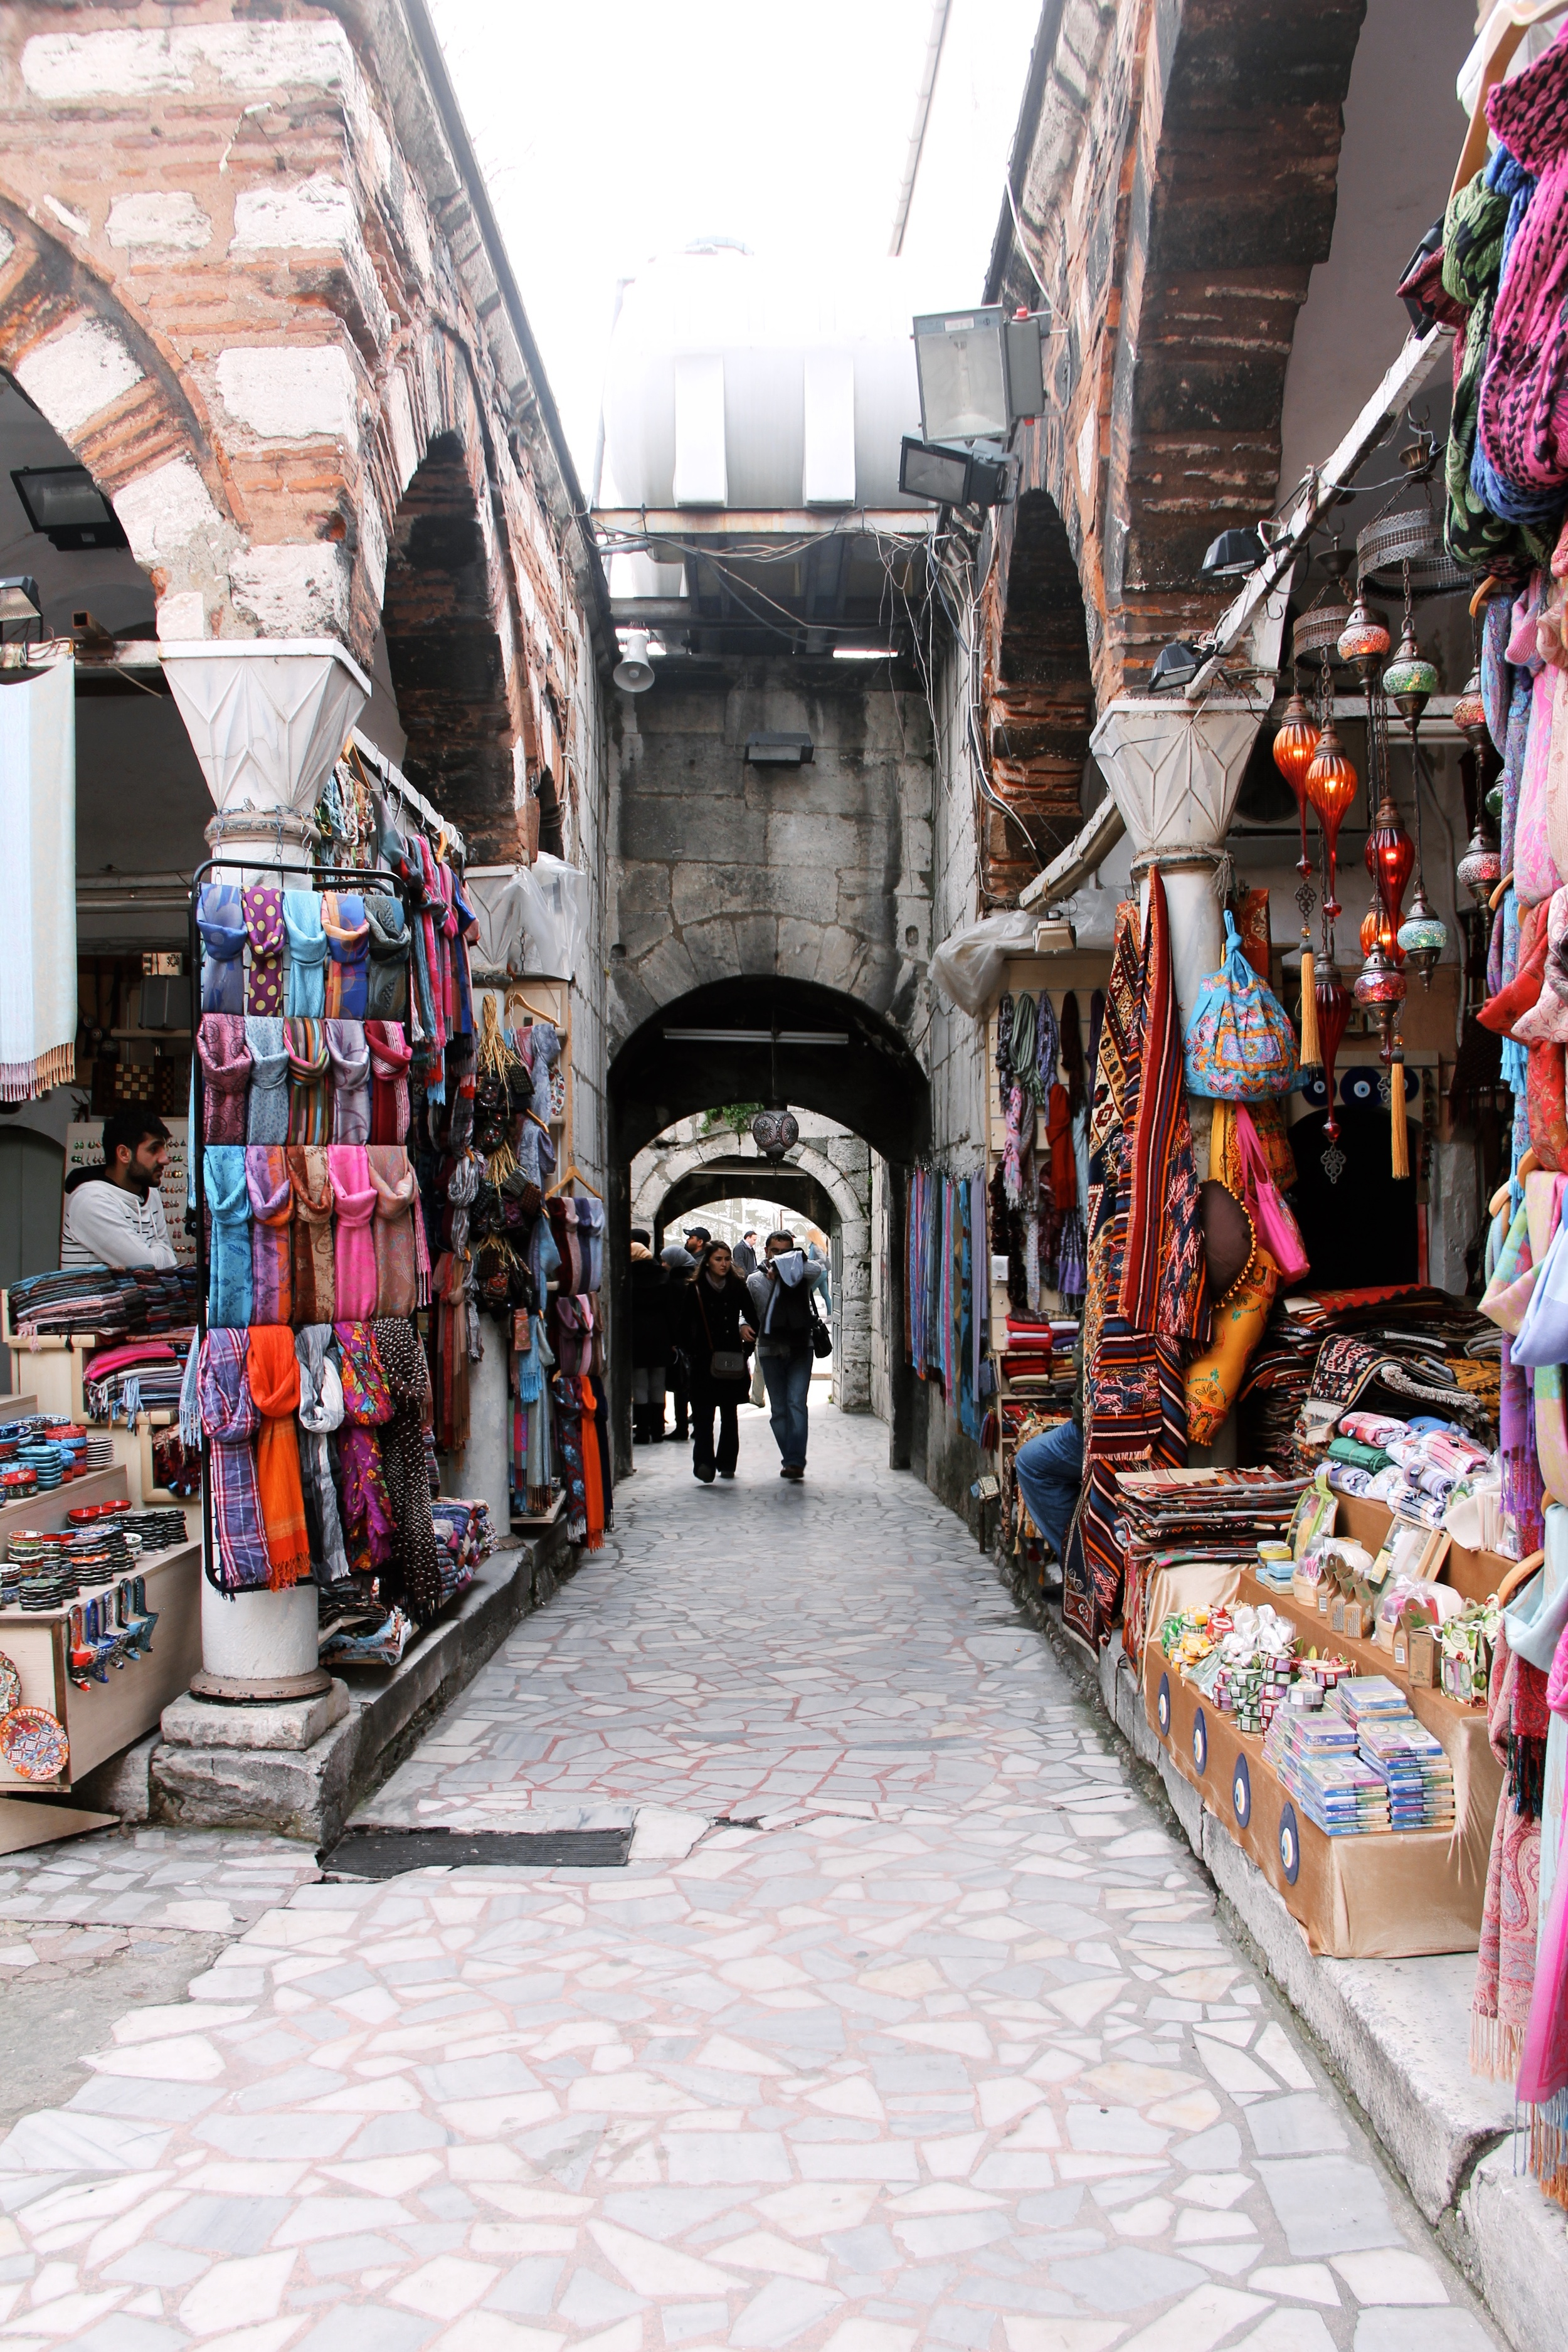 Wandering through little alleyways after visiting the Blue Mosque.